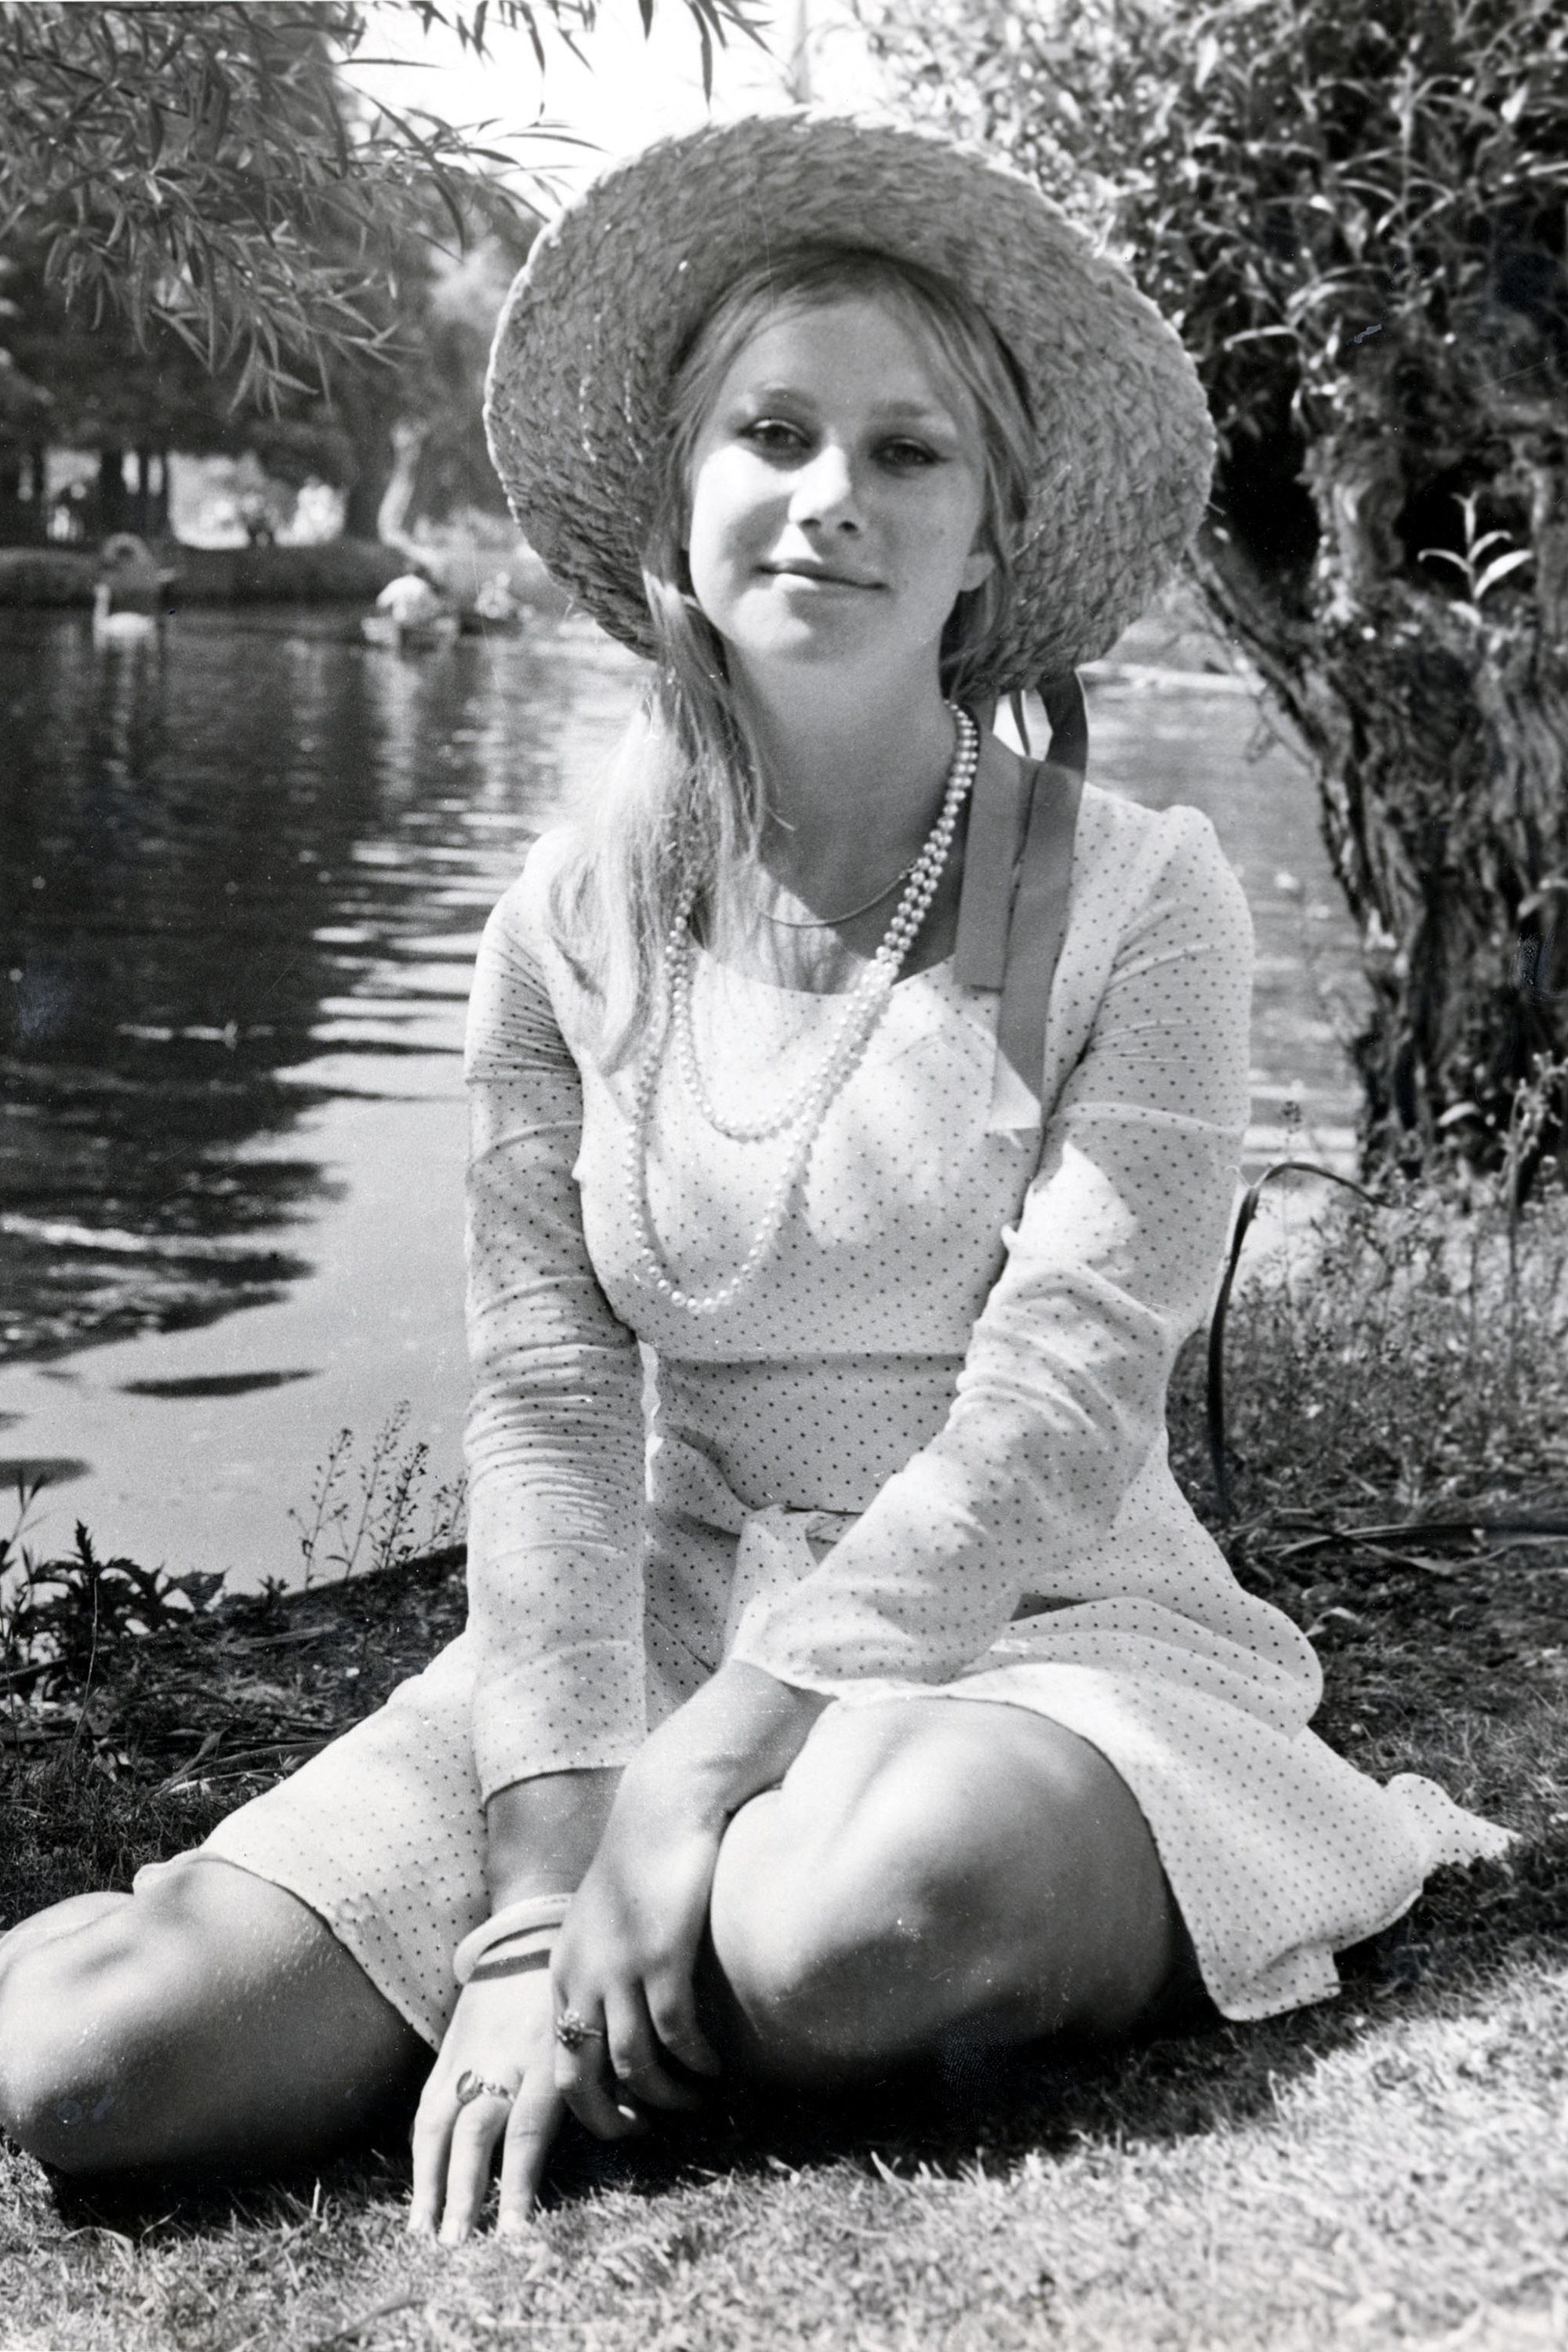 Helen mirren when she was young - Porn Pics & Moveis.